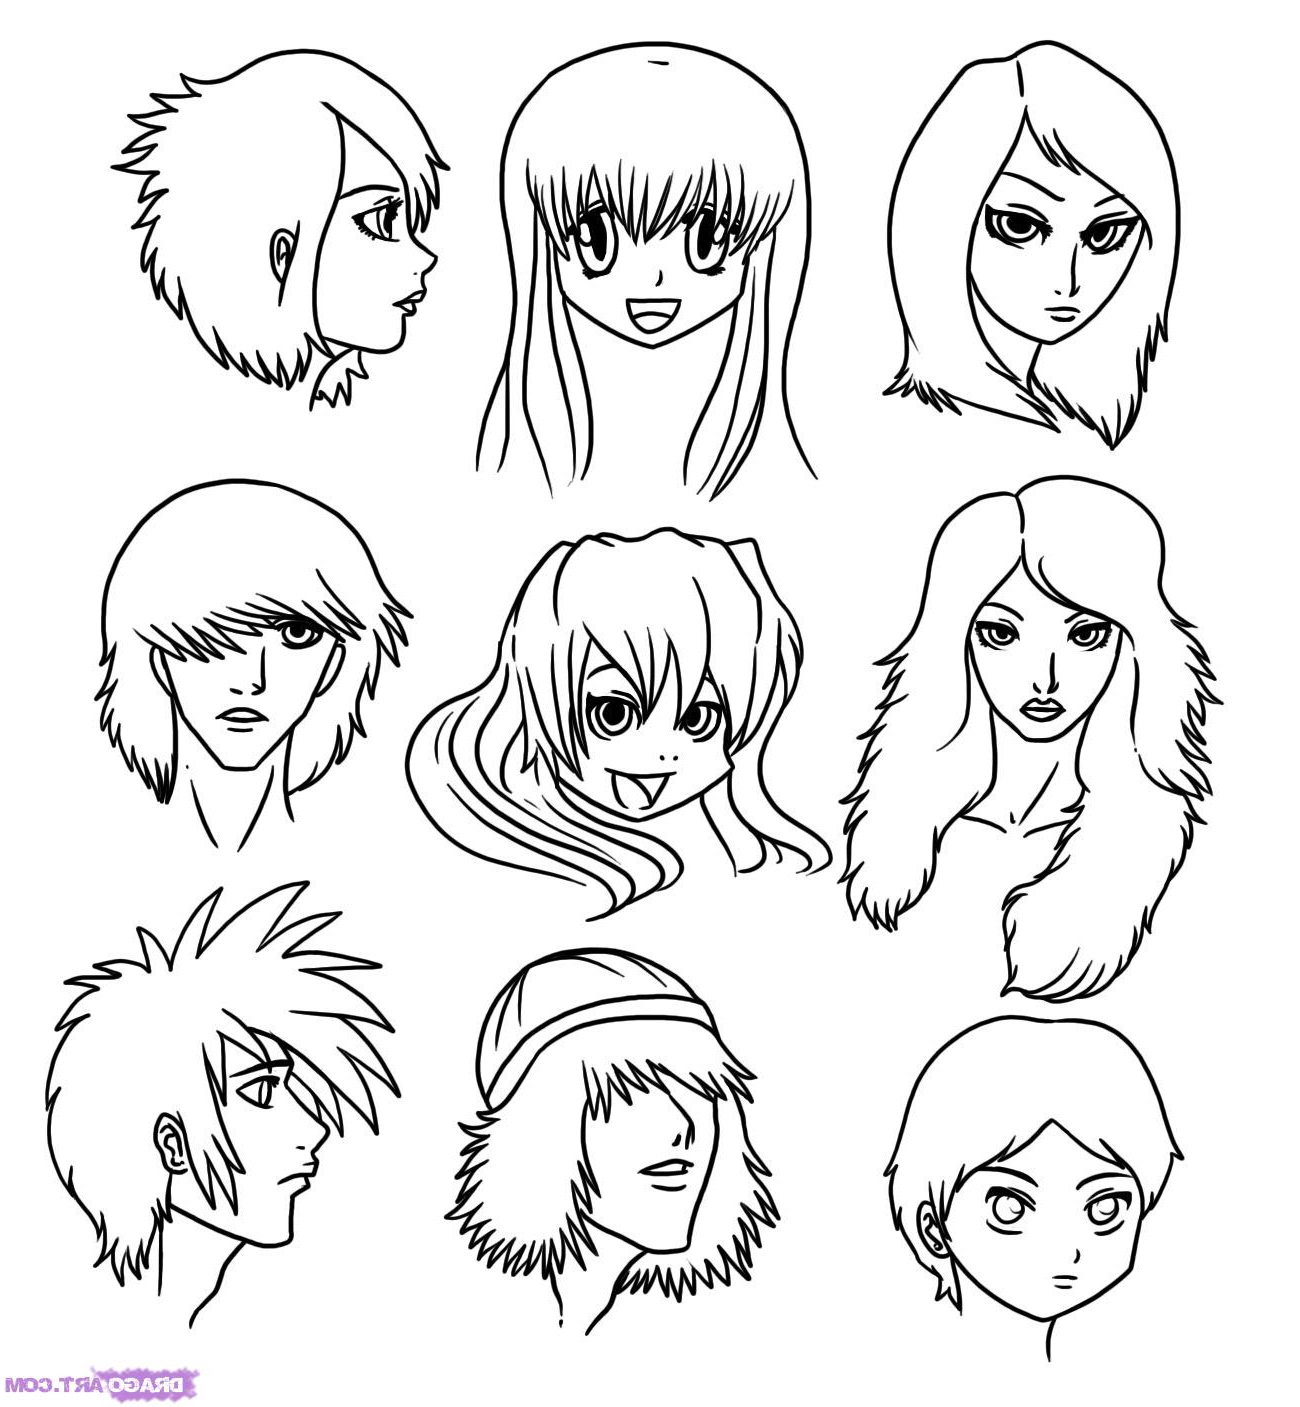 1300x1407 Cartoon Drawings Of People 6. How To Draw Cartoon Faces